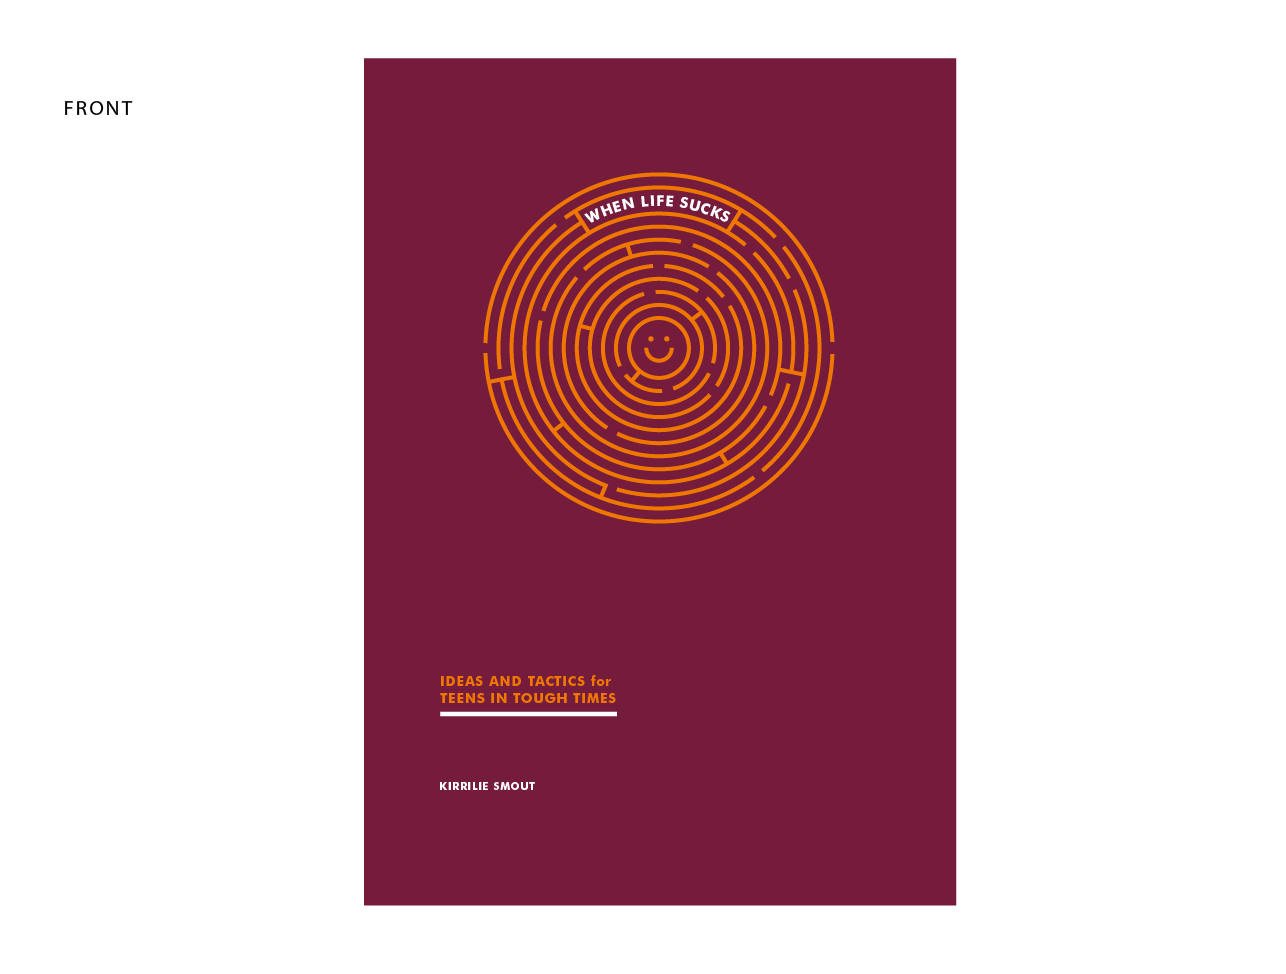 Book Cover Design Help : Bold playful book cover design for innovate psychology